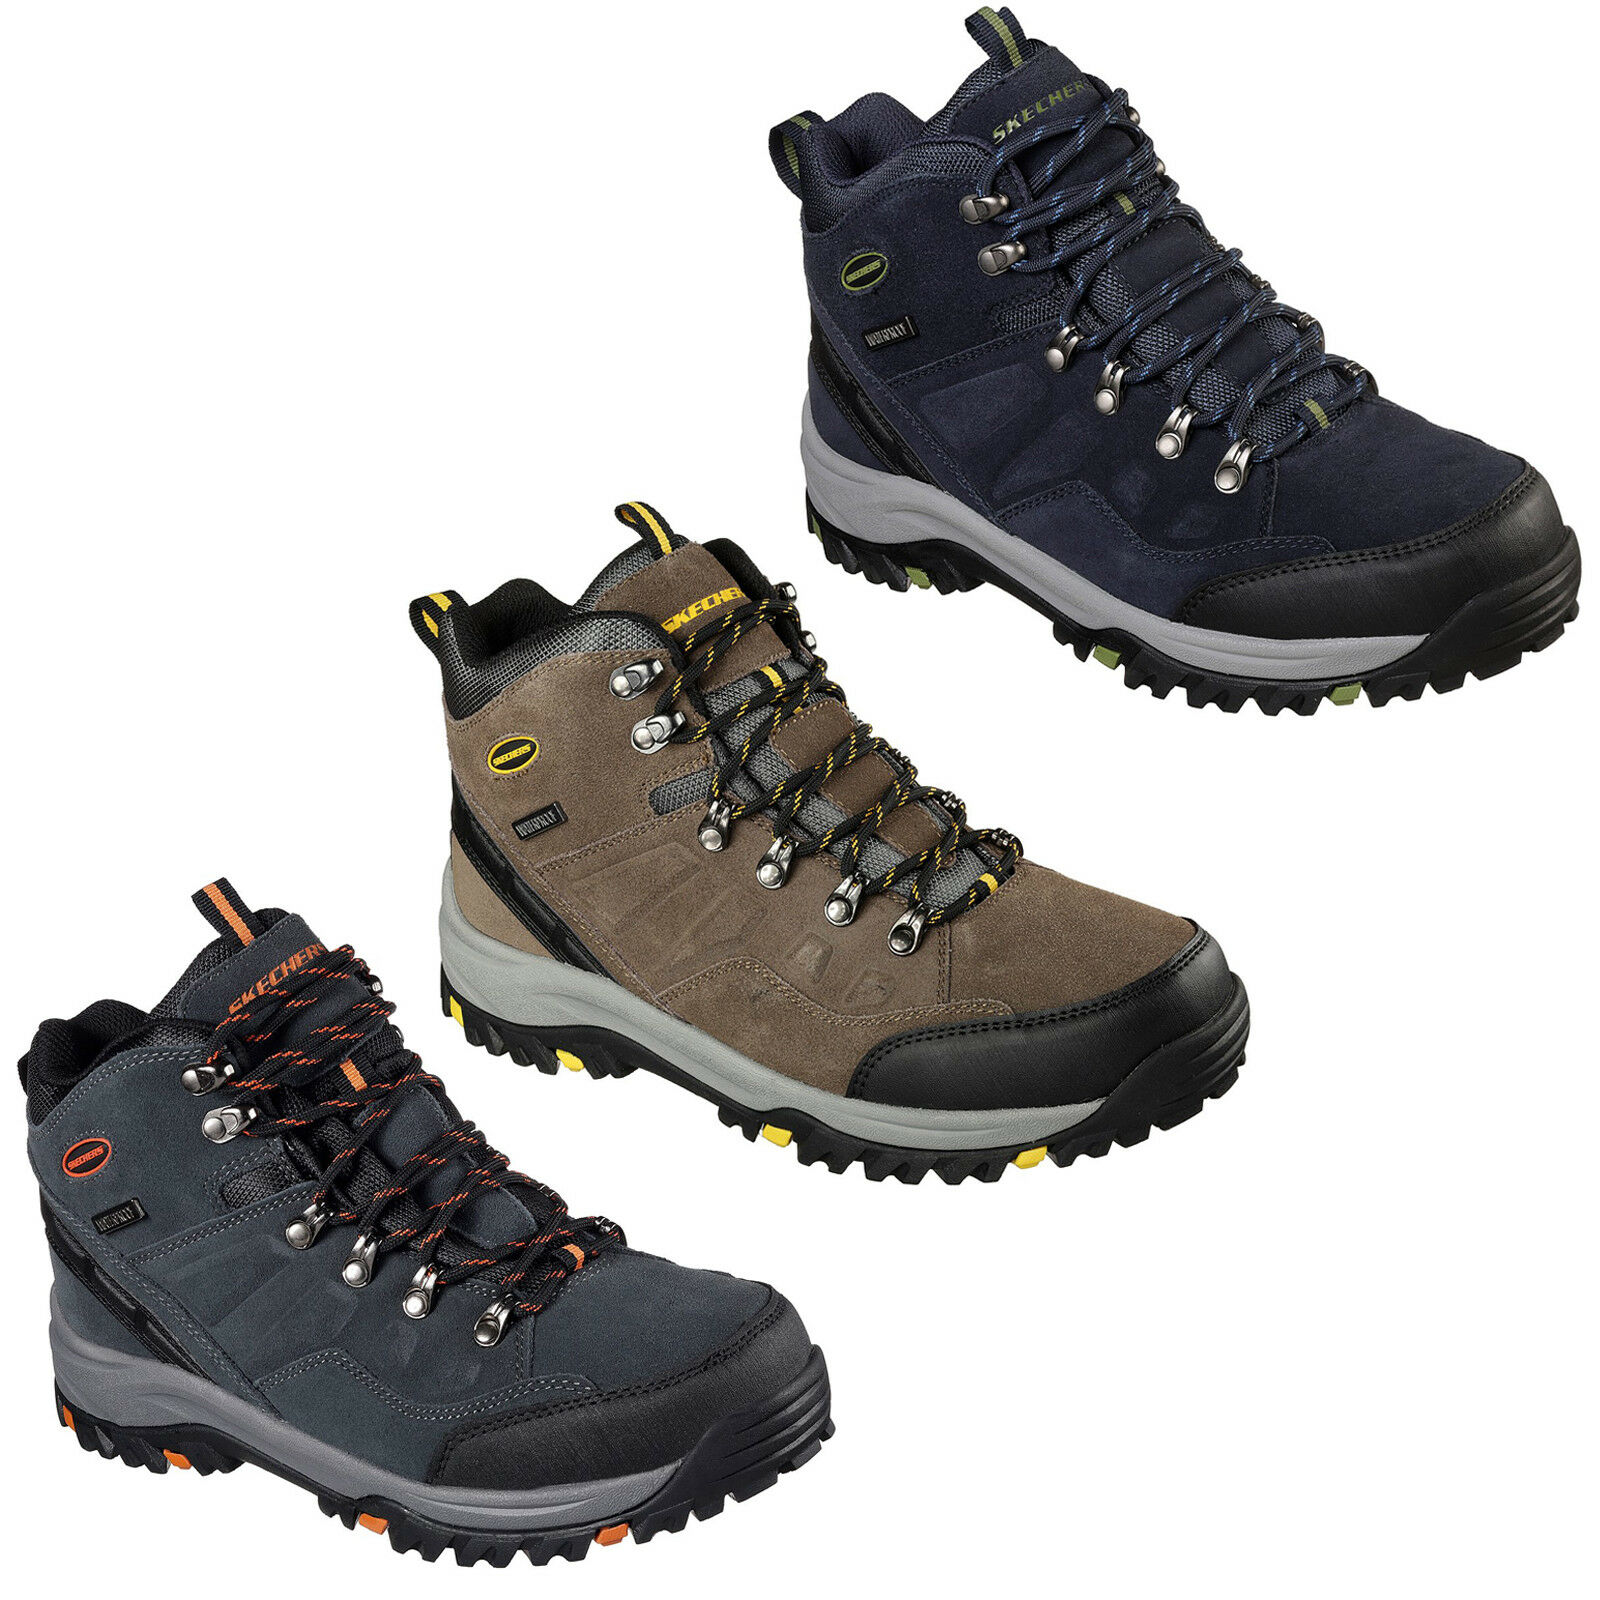 Skechers  Relaxed Fit Relment Pelmo Boots Mens Waterproof Memory Foam Hiking shoes  best reputation